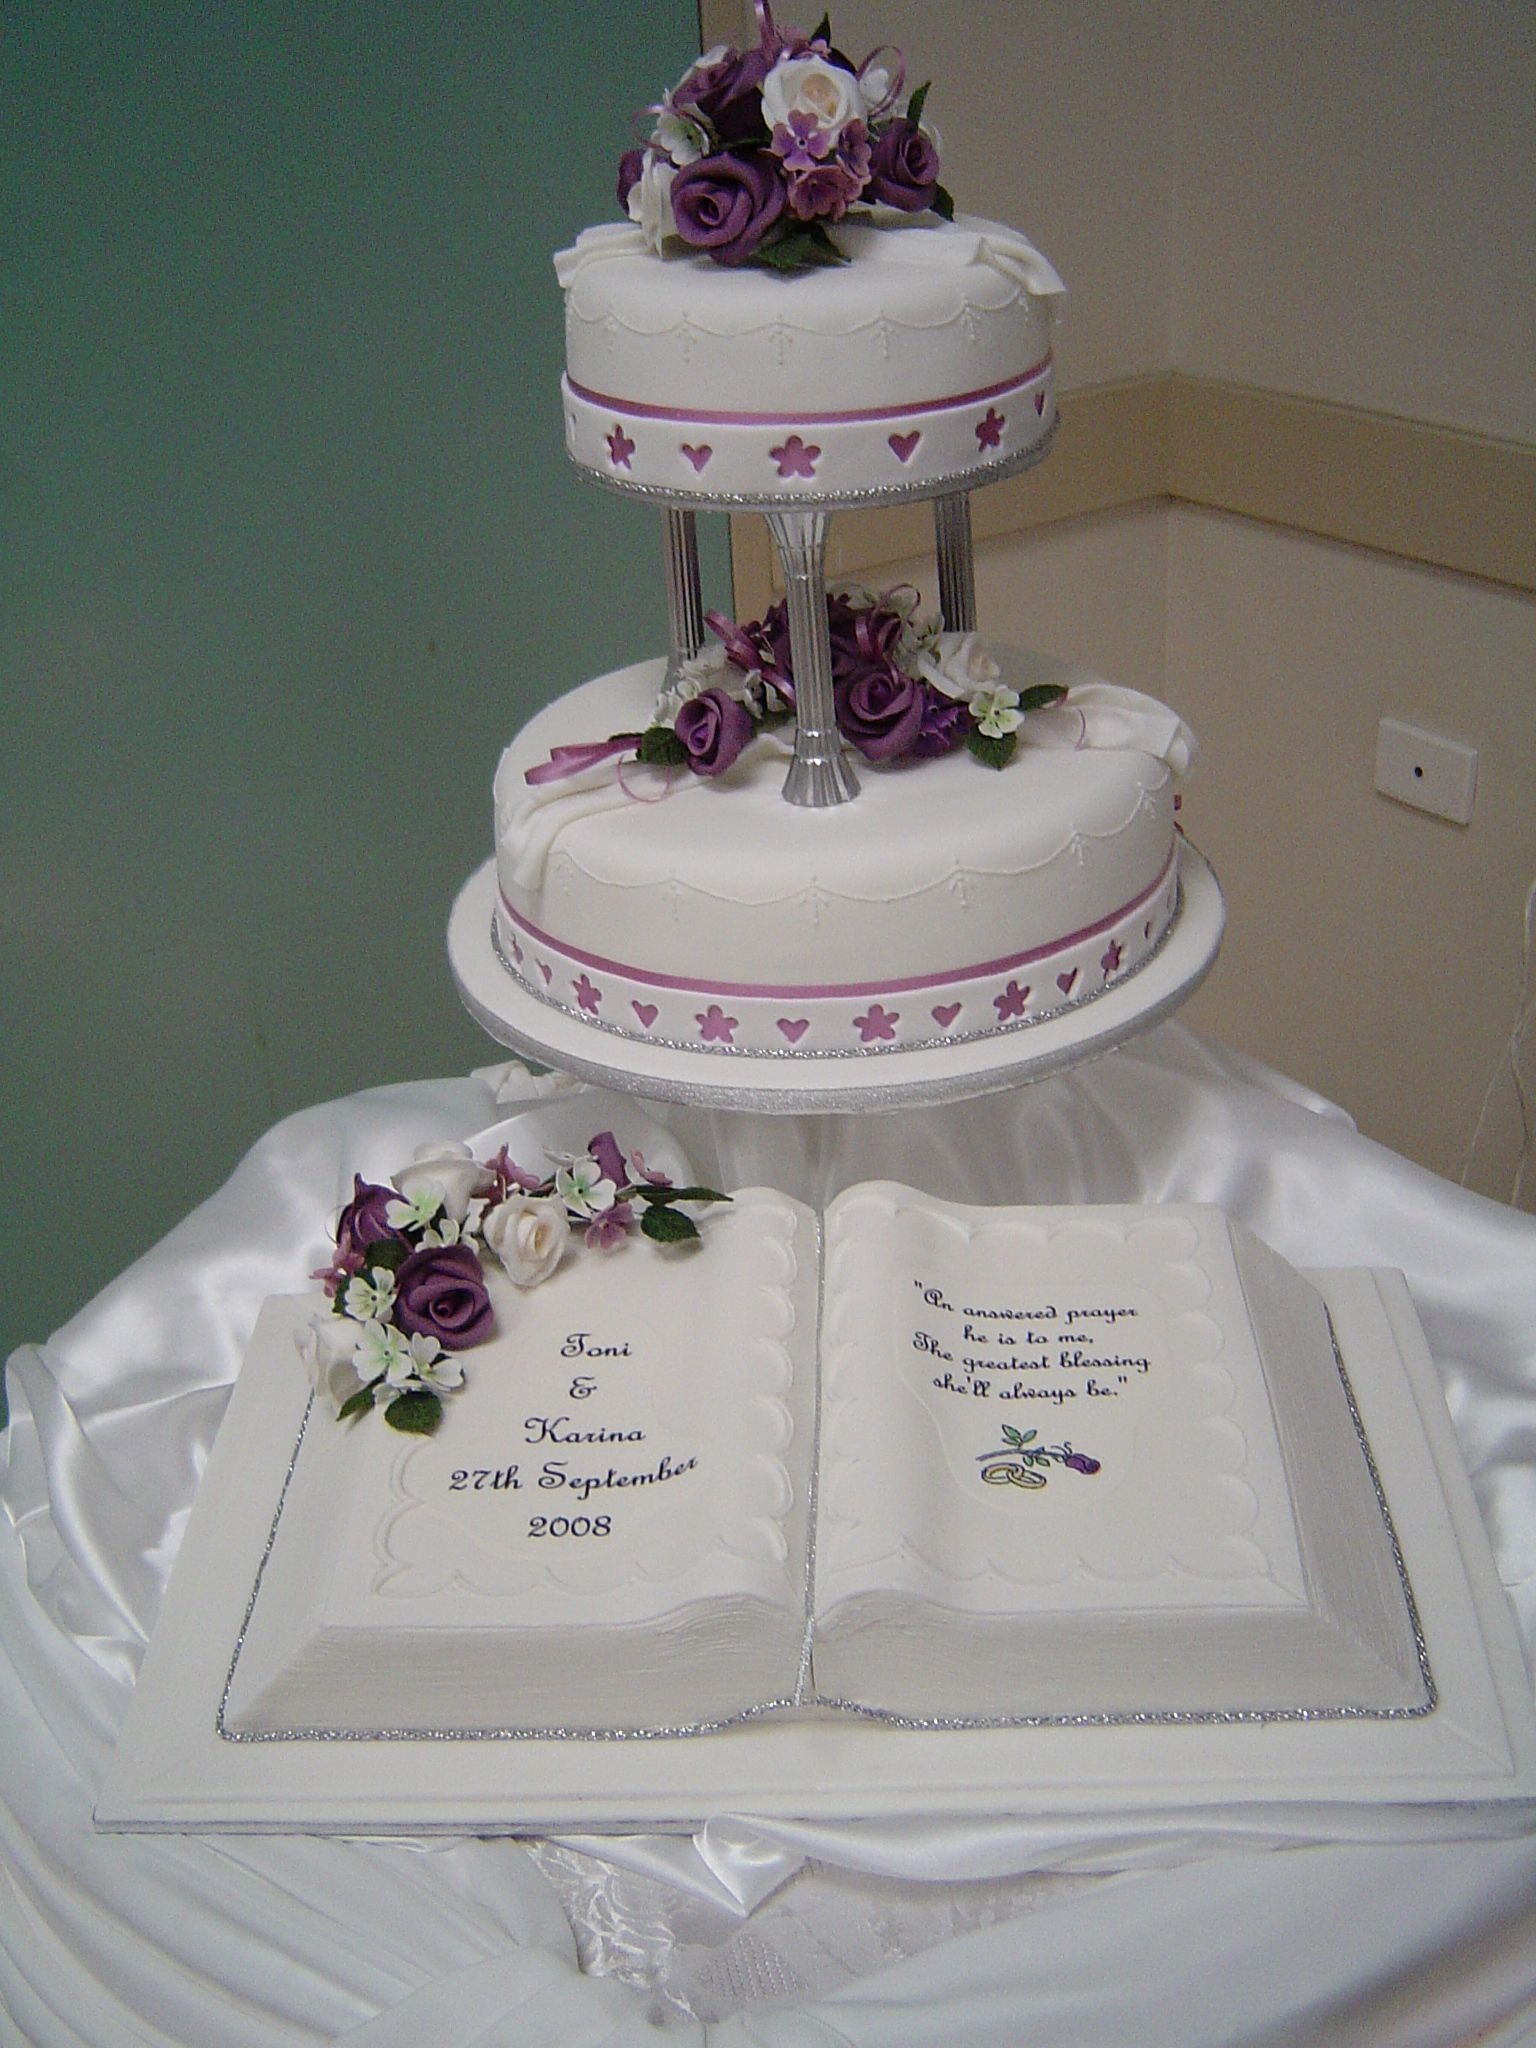 Local Edible Cake Images : Two Tier Wedding Cake with Customized Edible Bible created ...